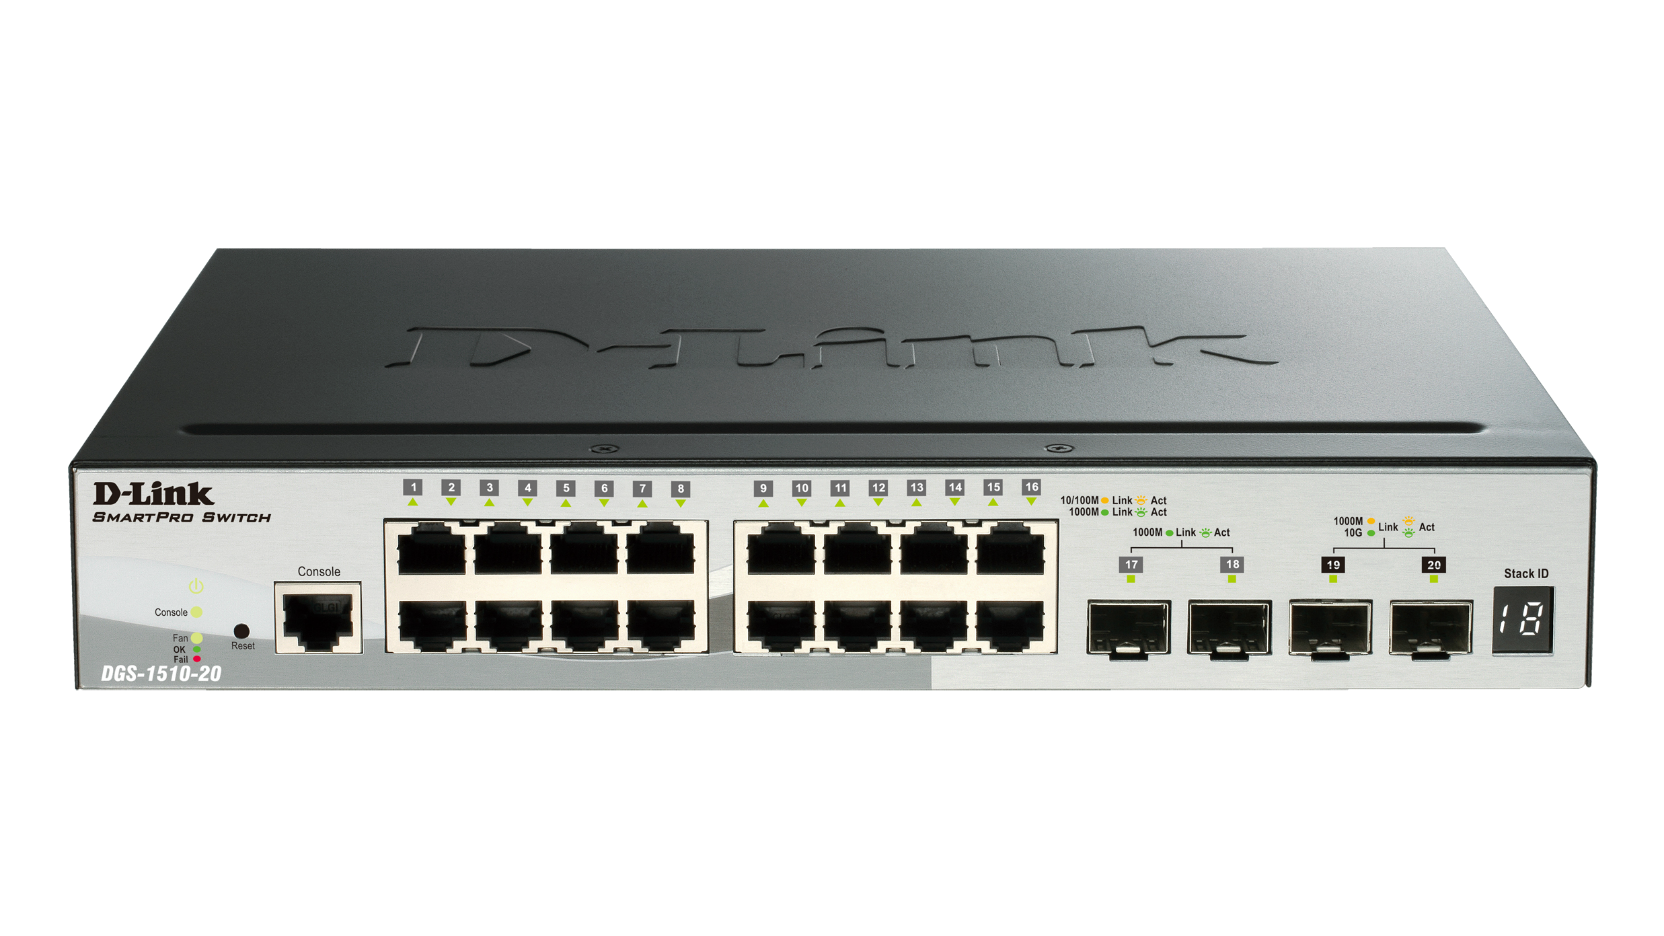 20-Port Gigabit Stackable Smart Managed Switch including 2 10G SFP+ and 2 SFP ports